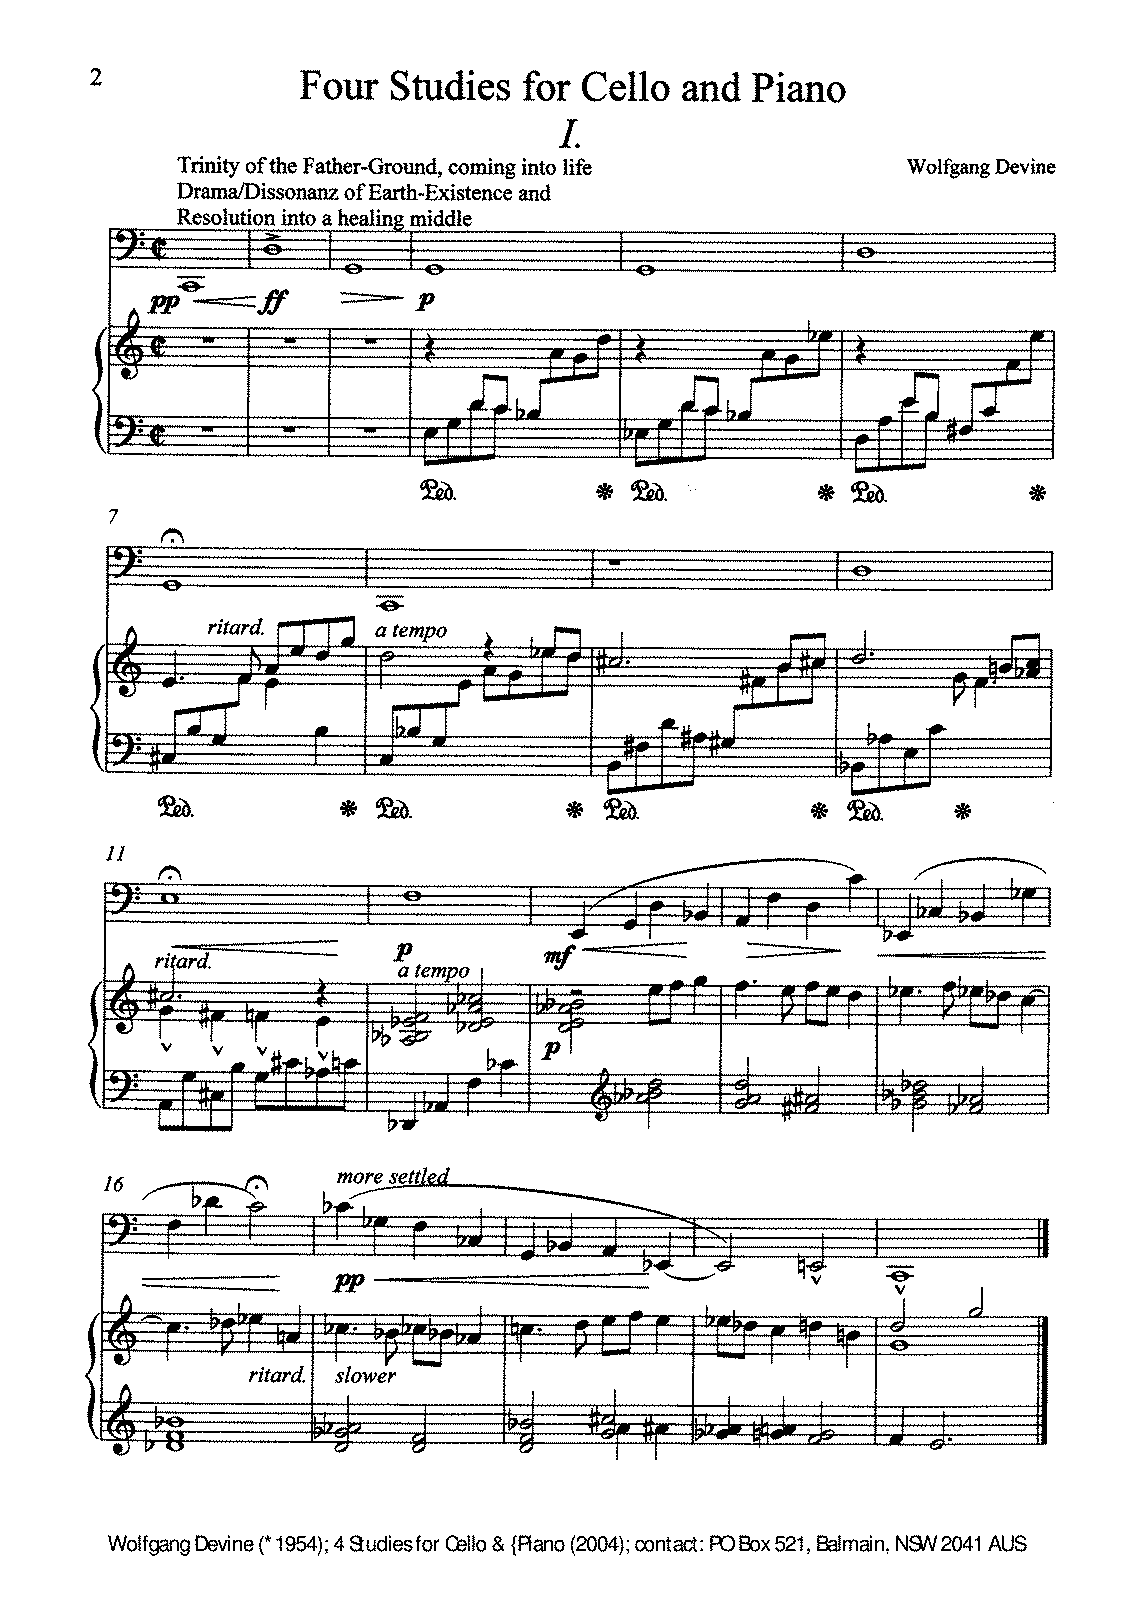 PMLP203384-Devine Wolfgang Cello Piano Studies 2004.pdf